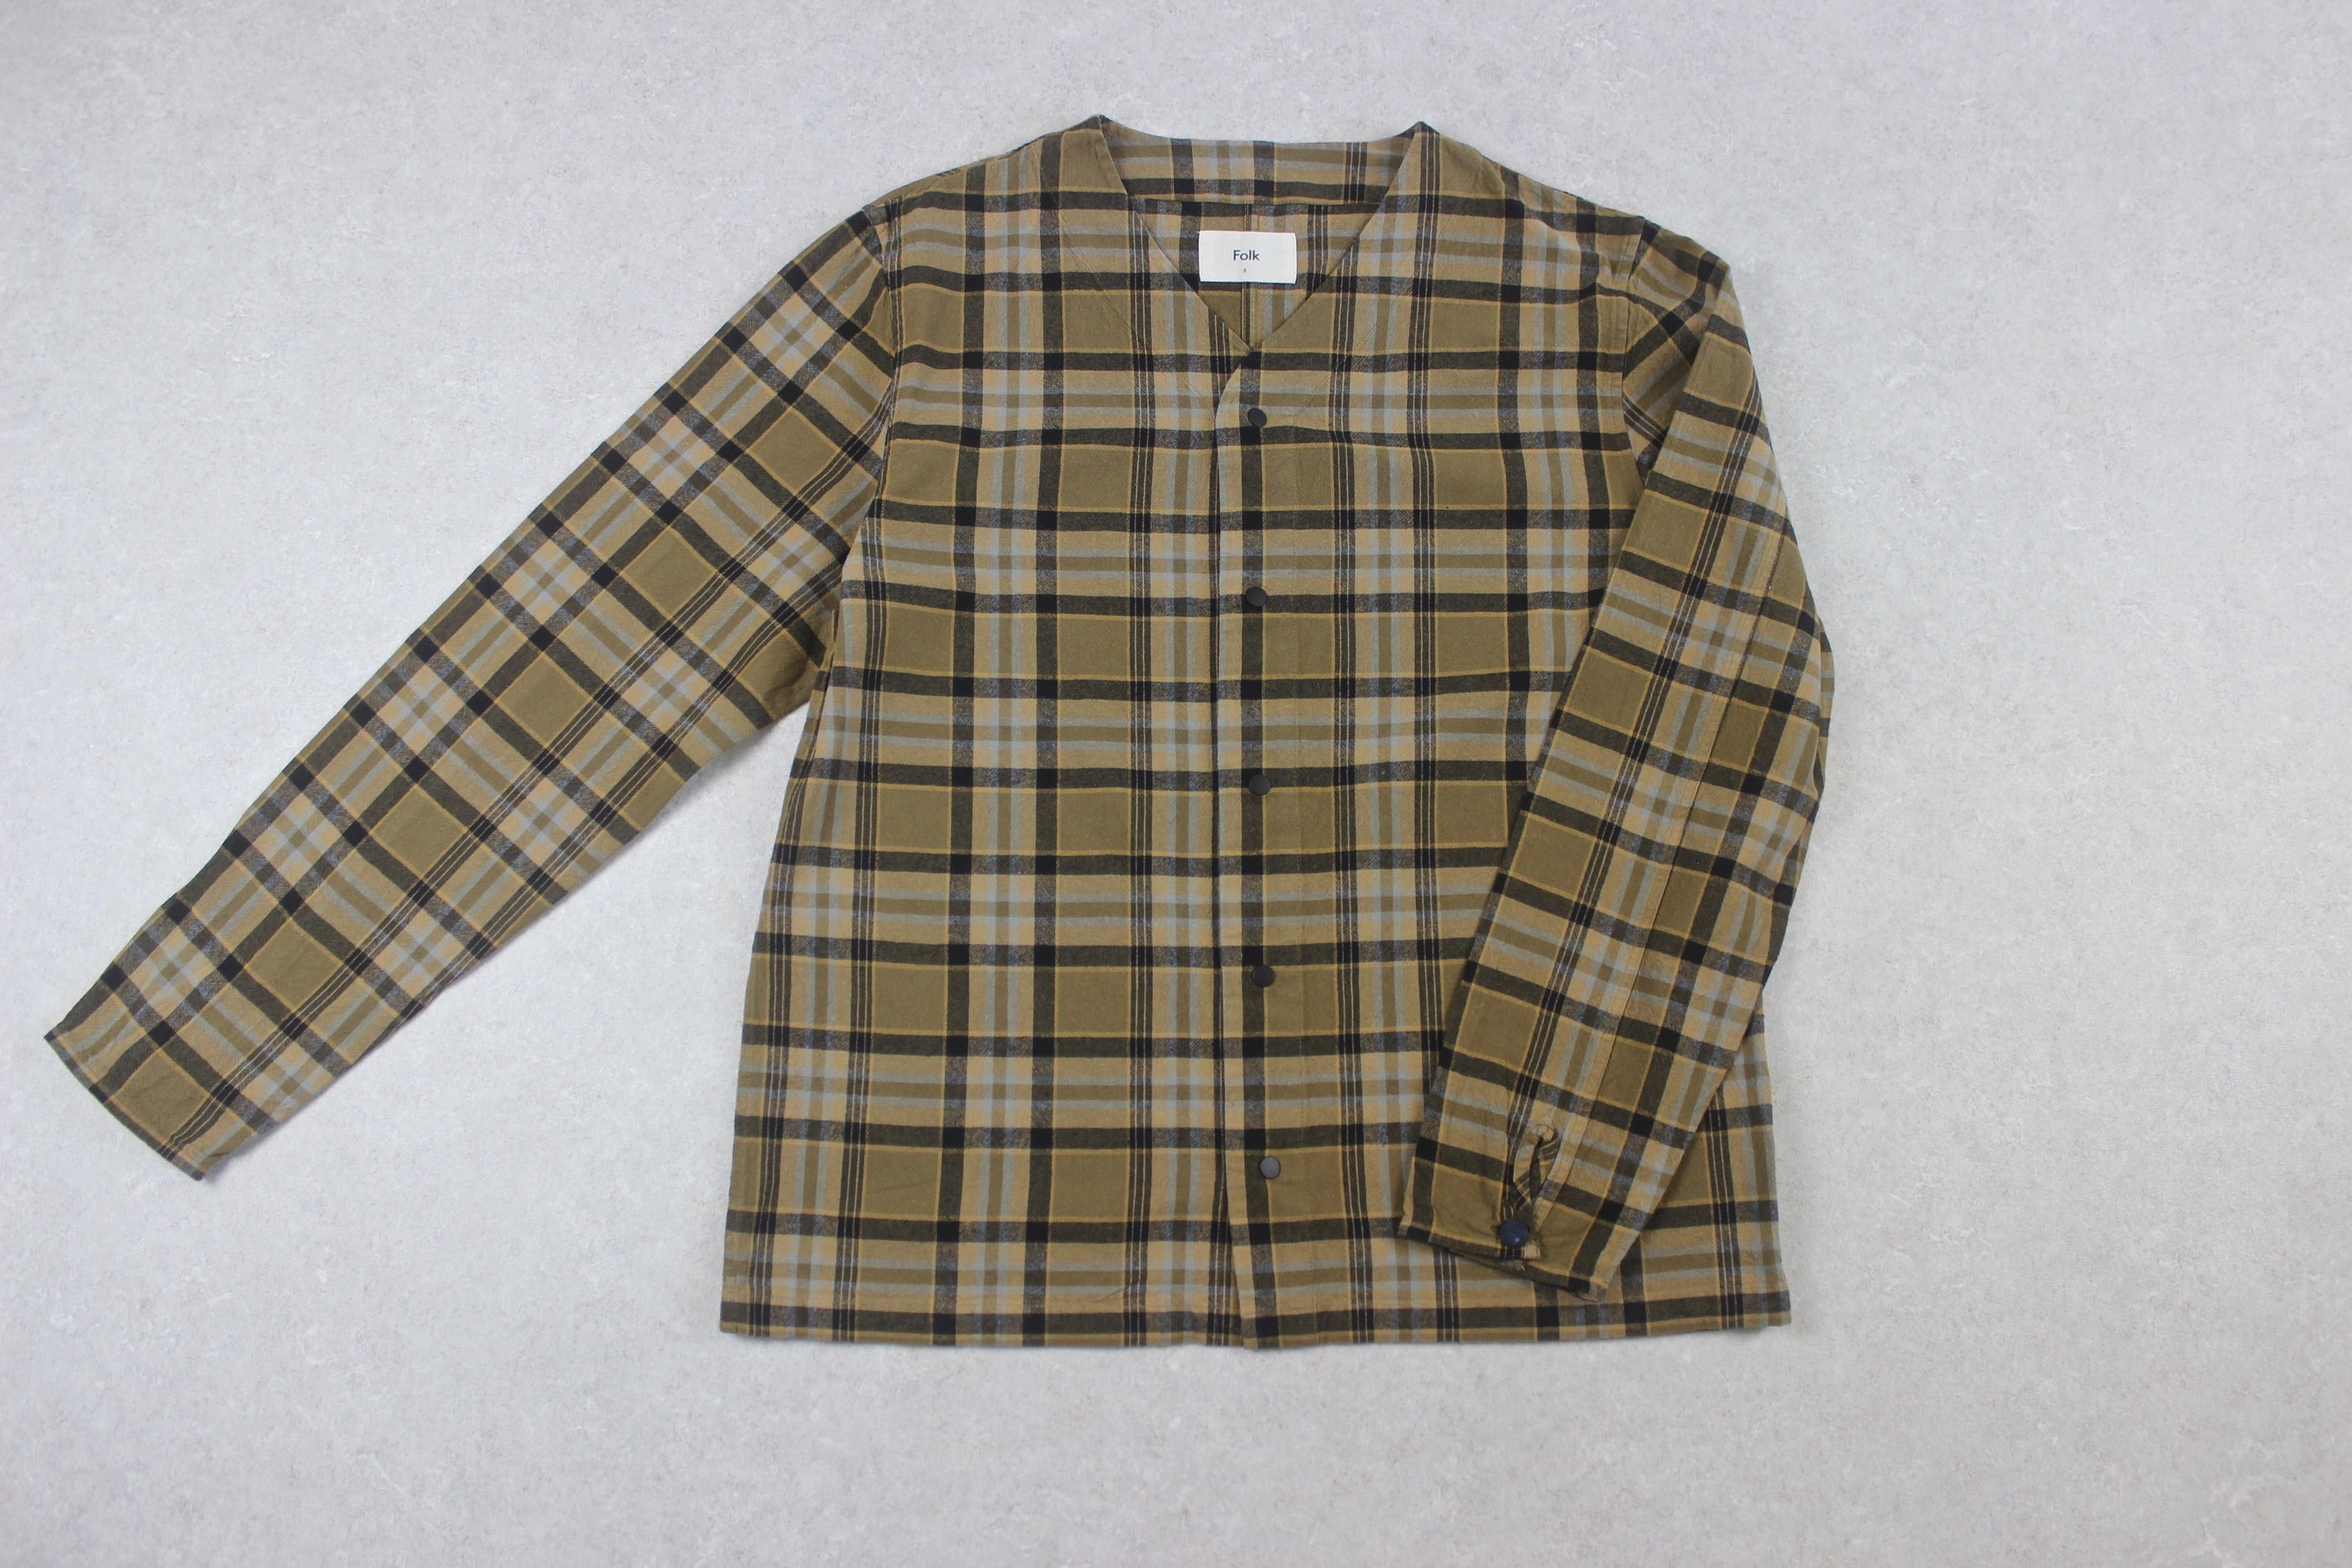 Folk - Shirt Jacket - Brown Check - 5/Extra Large